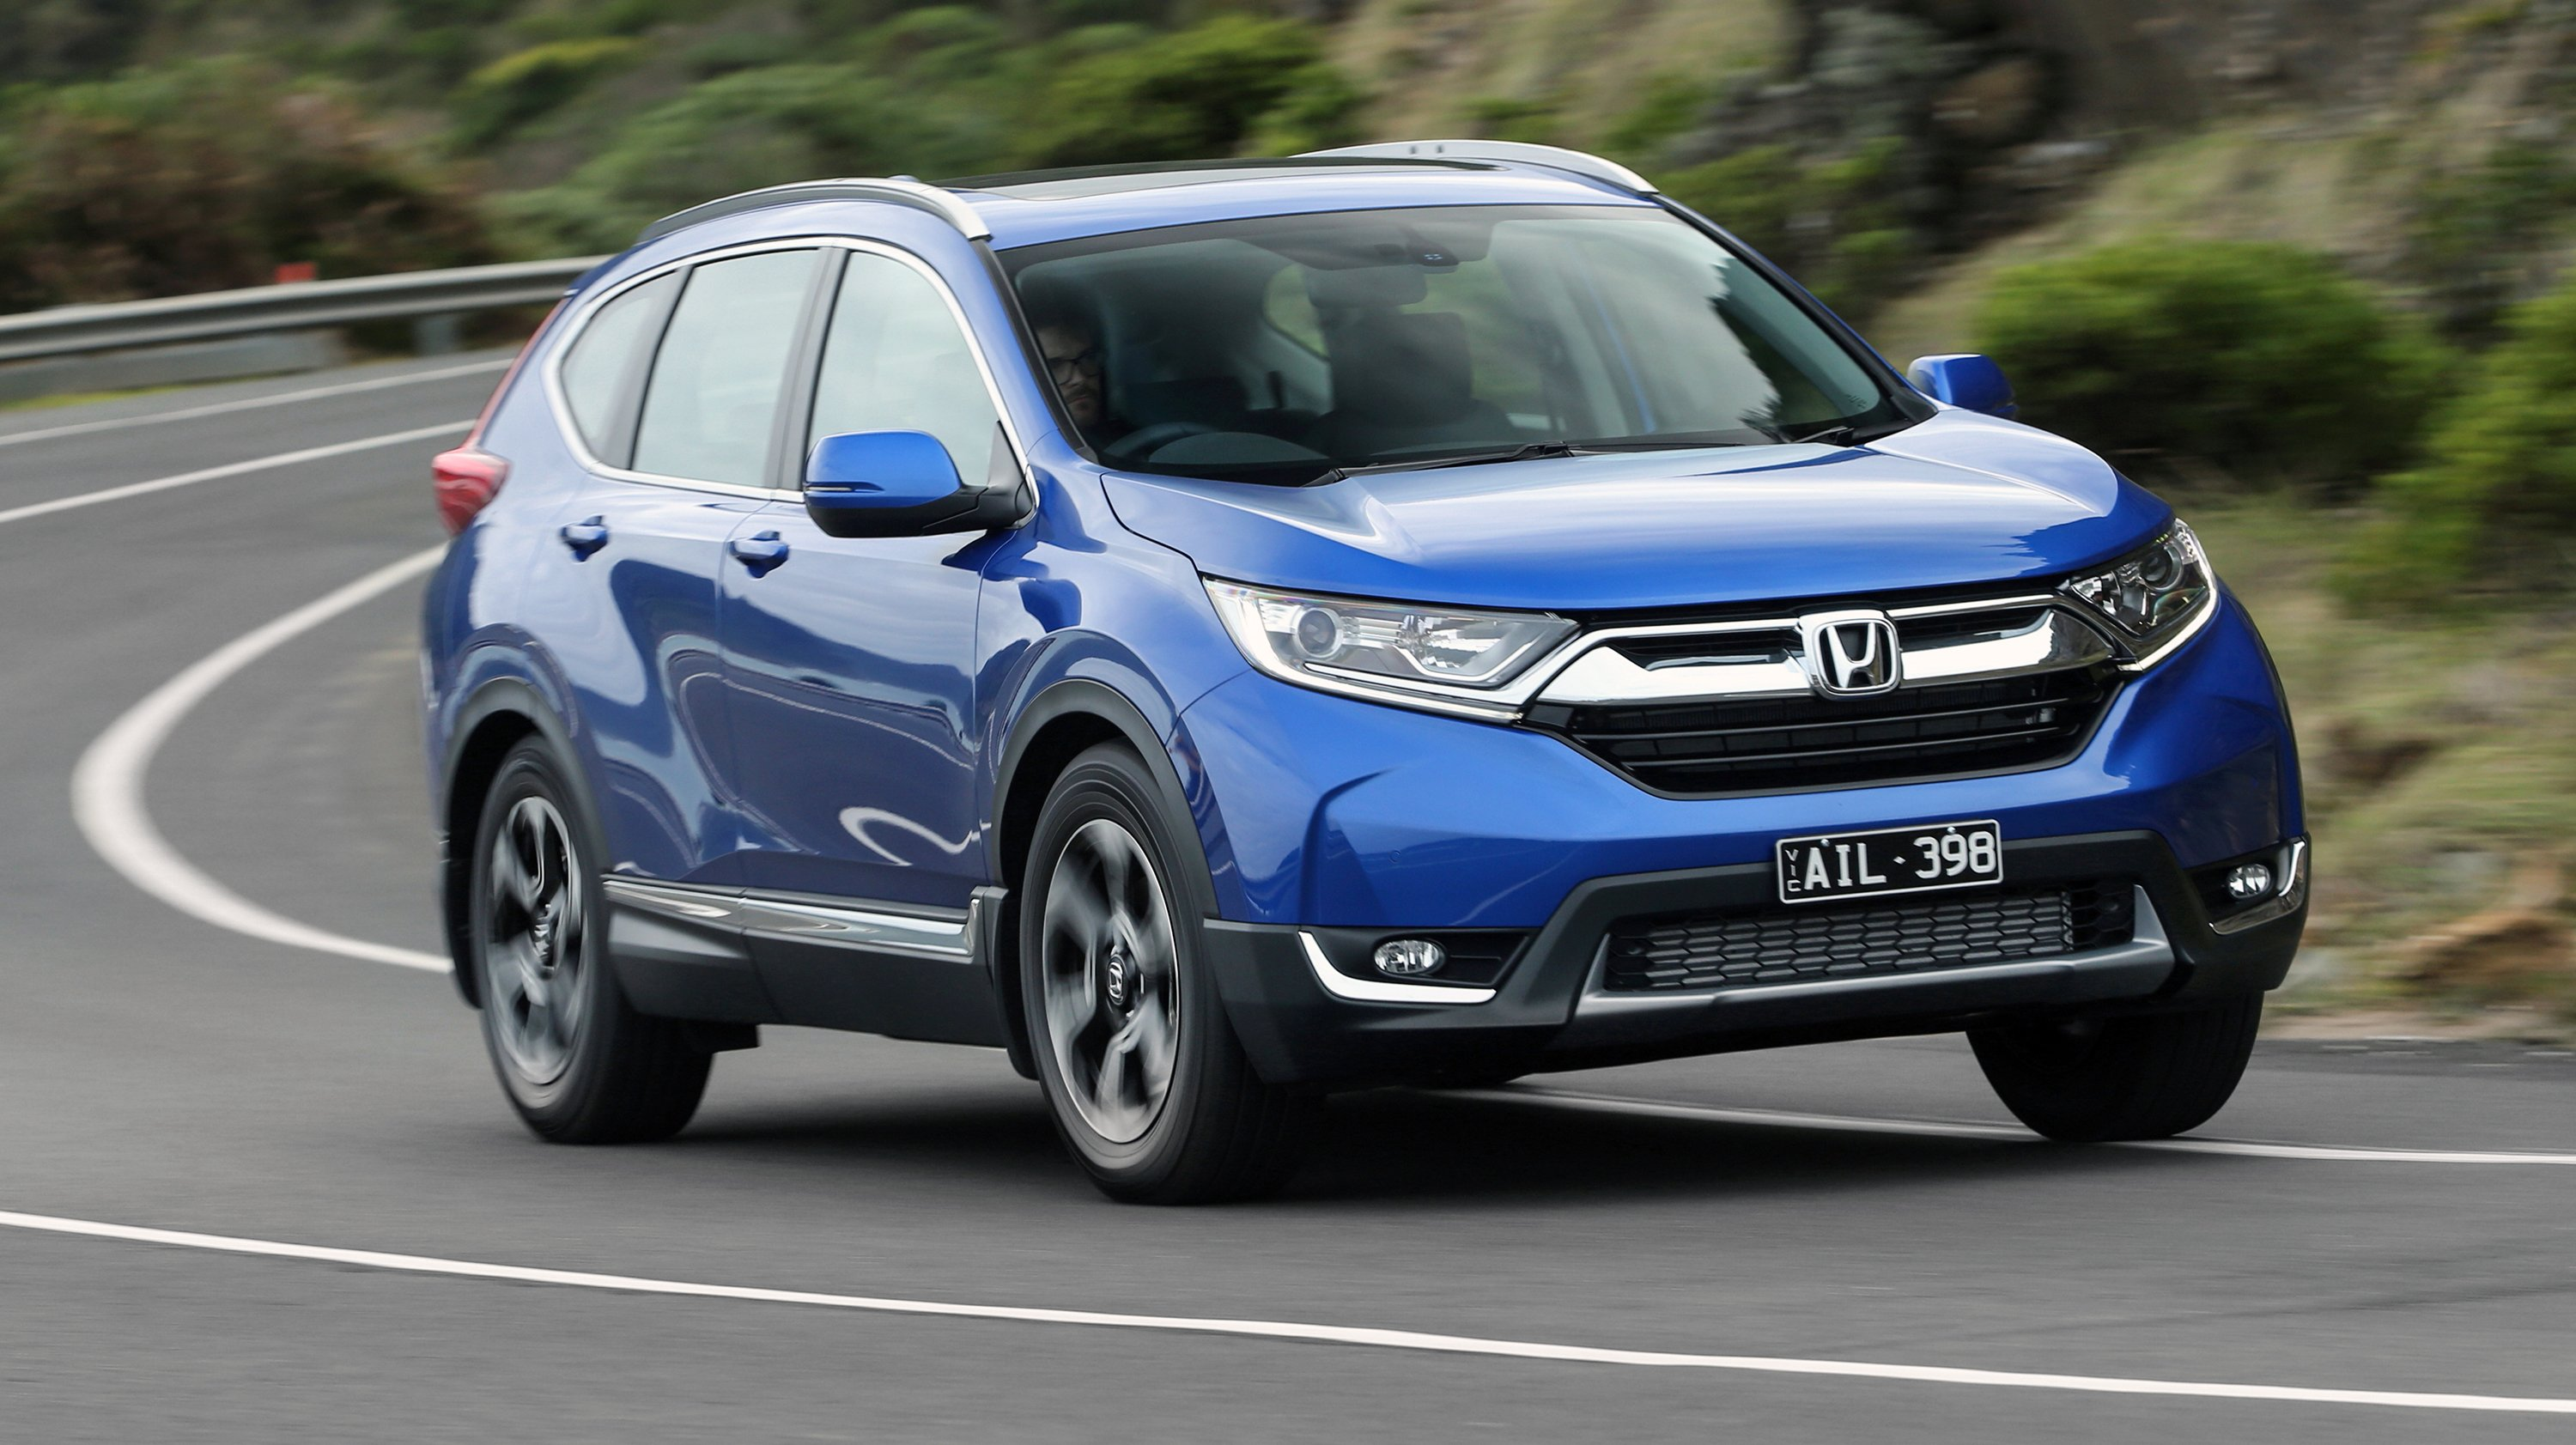 2018 Honda Cr V Pricing And Specs Turbo Five And Seven Seat Suv Arrives Photos 1 Of 21